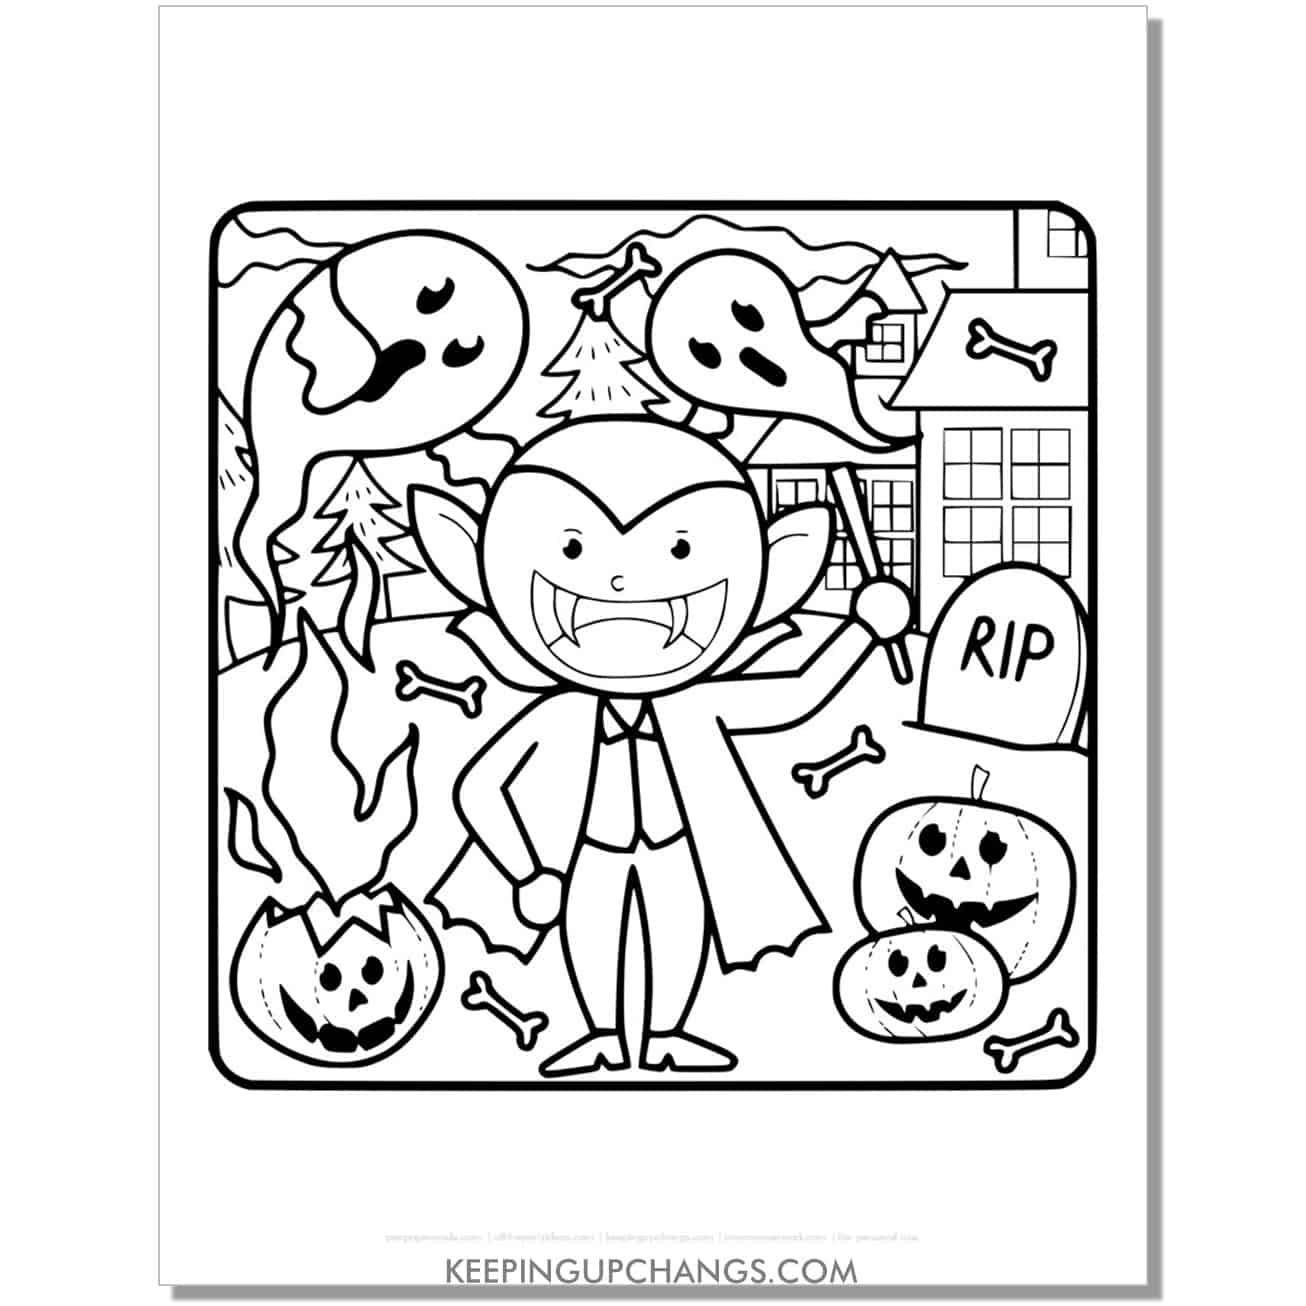 free vampire boy with ghosts, jack o lanterns coloring page.